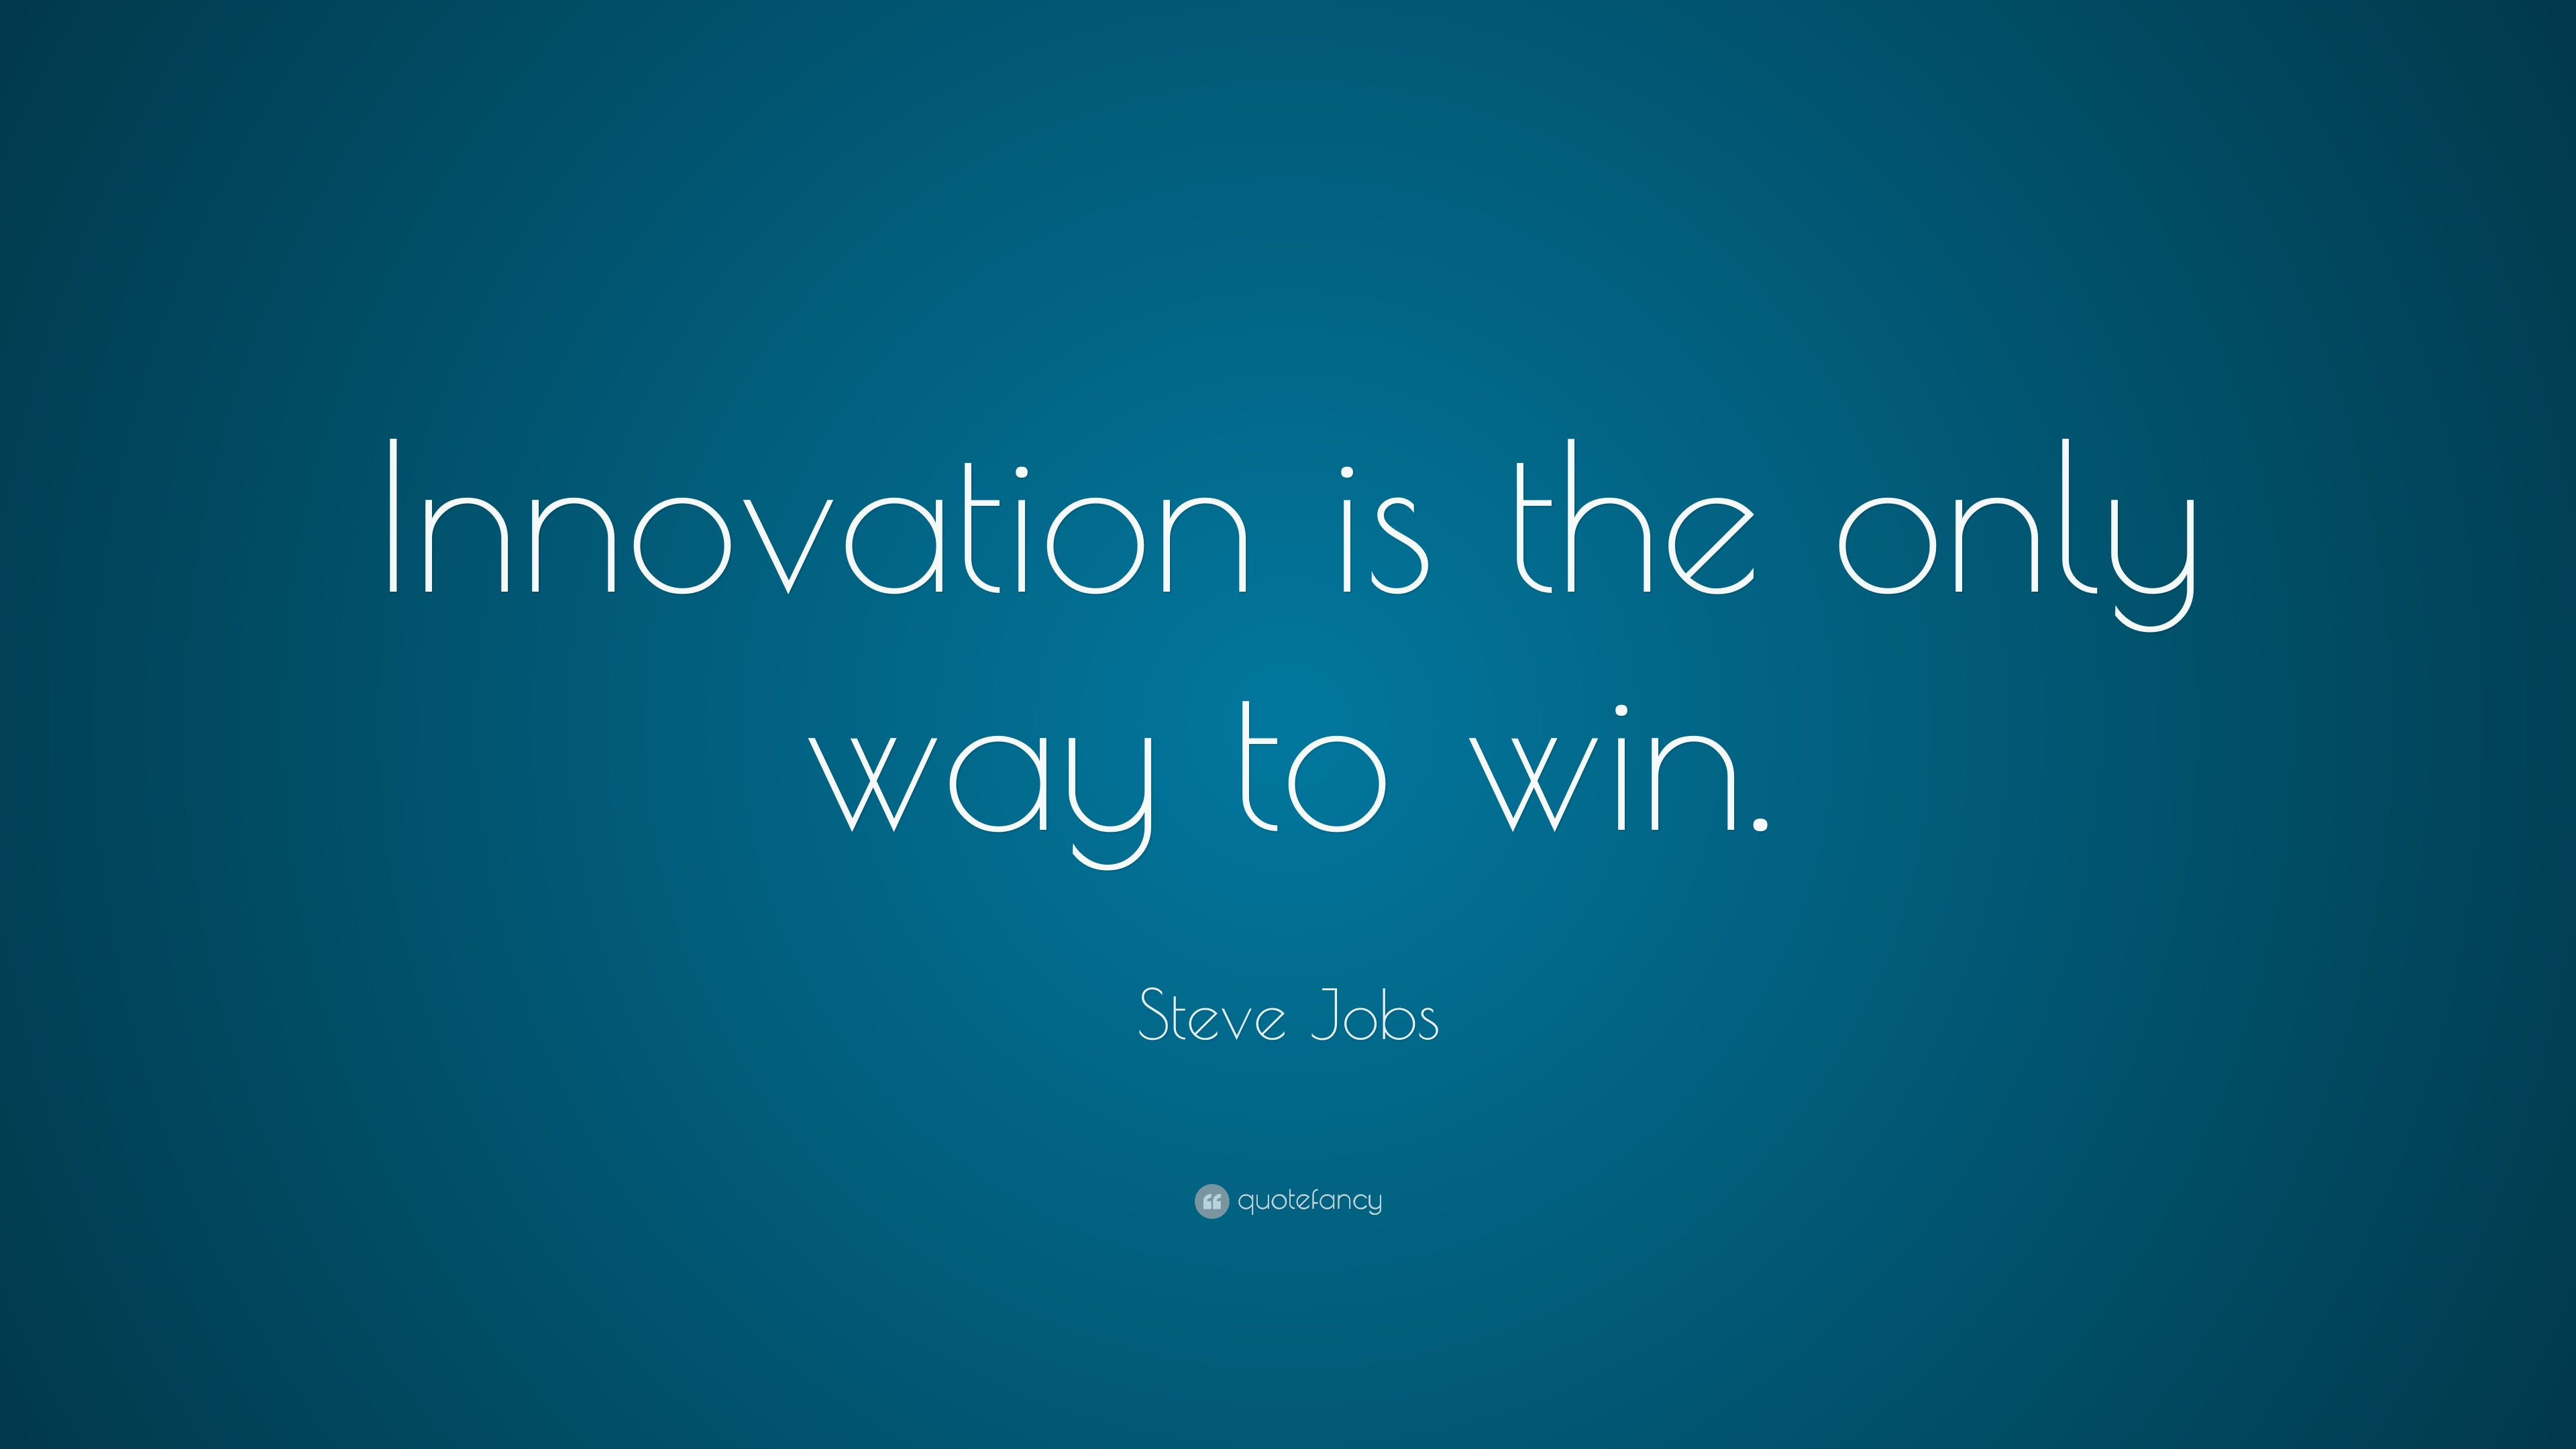 Apollo 13 Quotes Ele quotes about innovations (149 quotes)